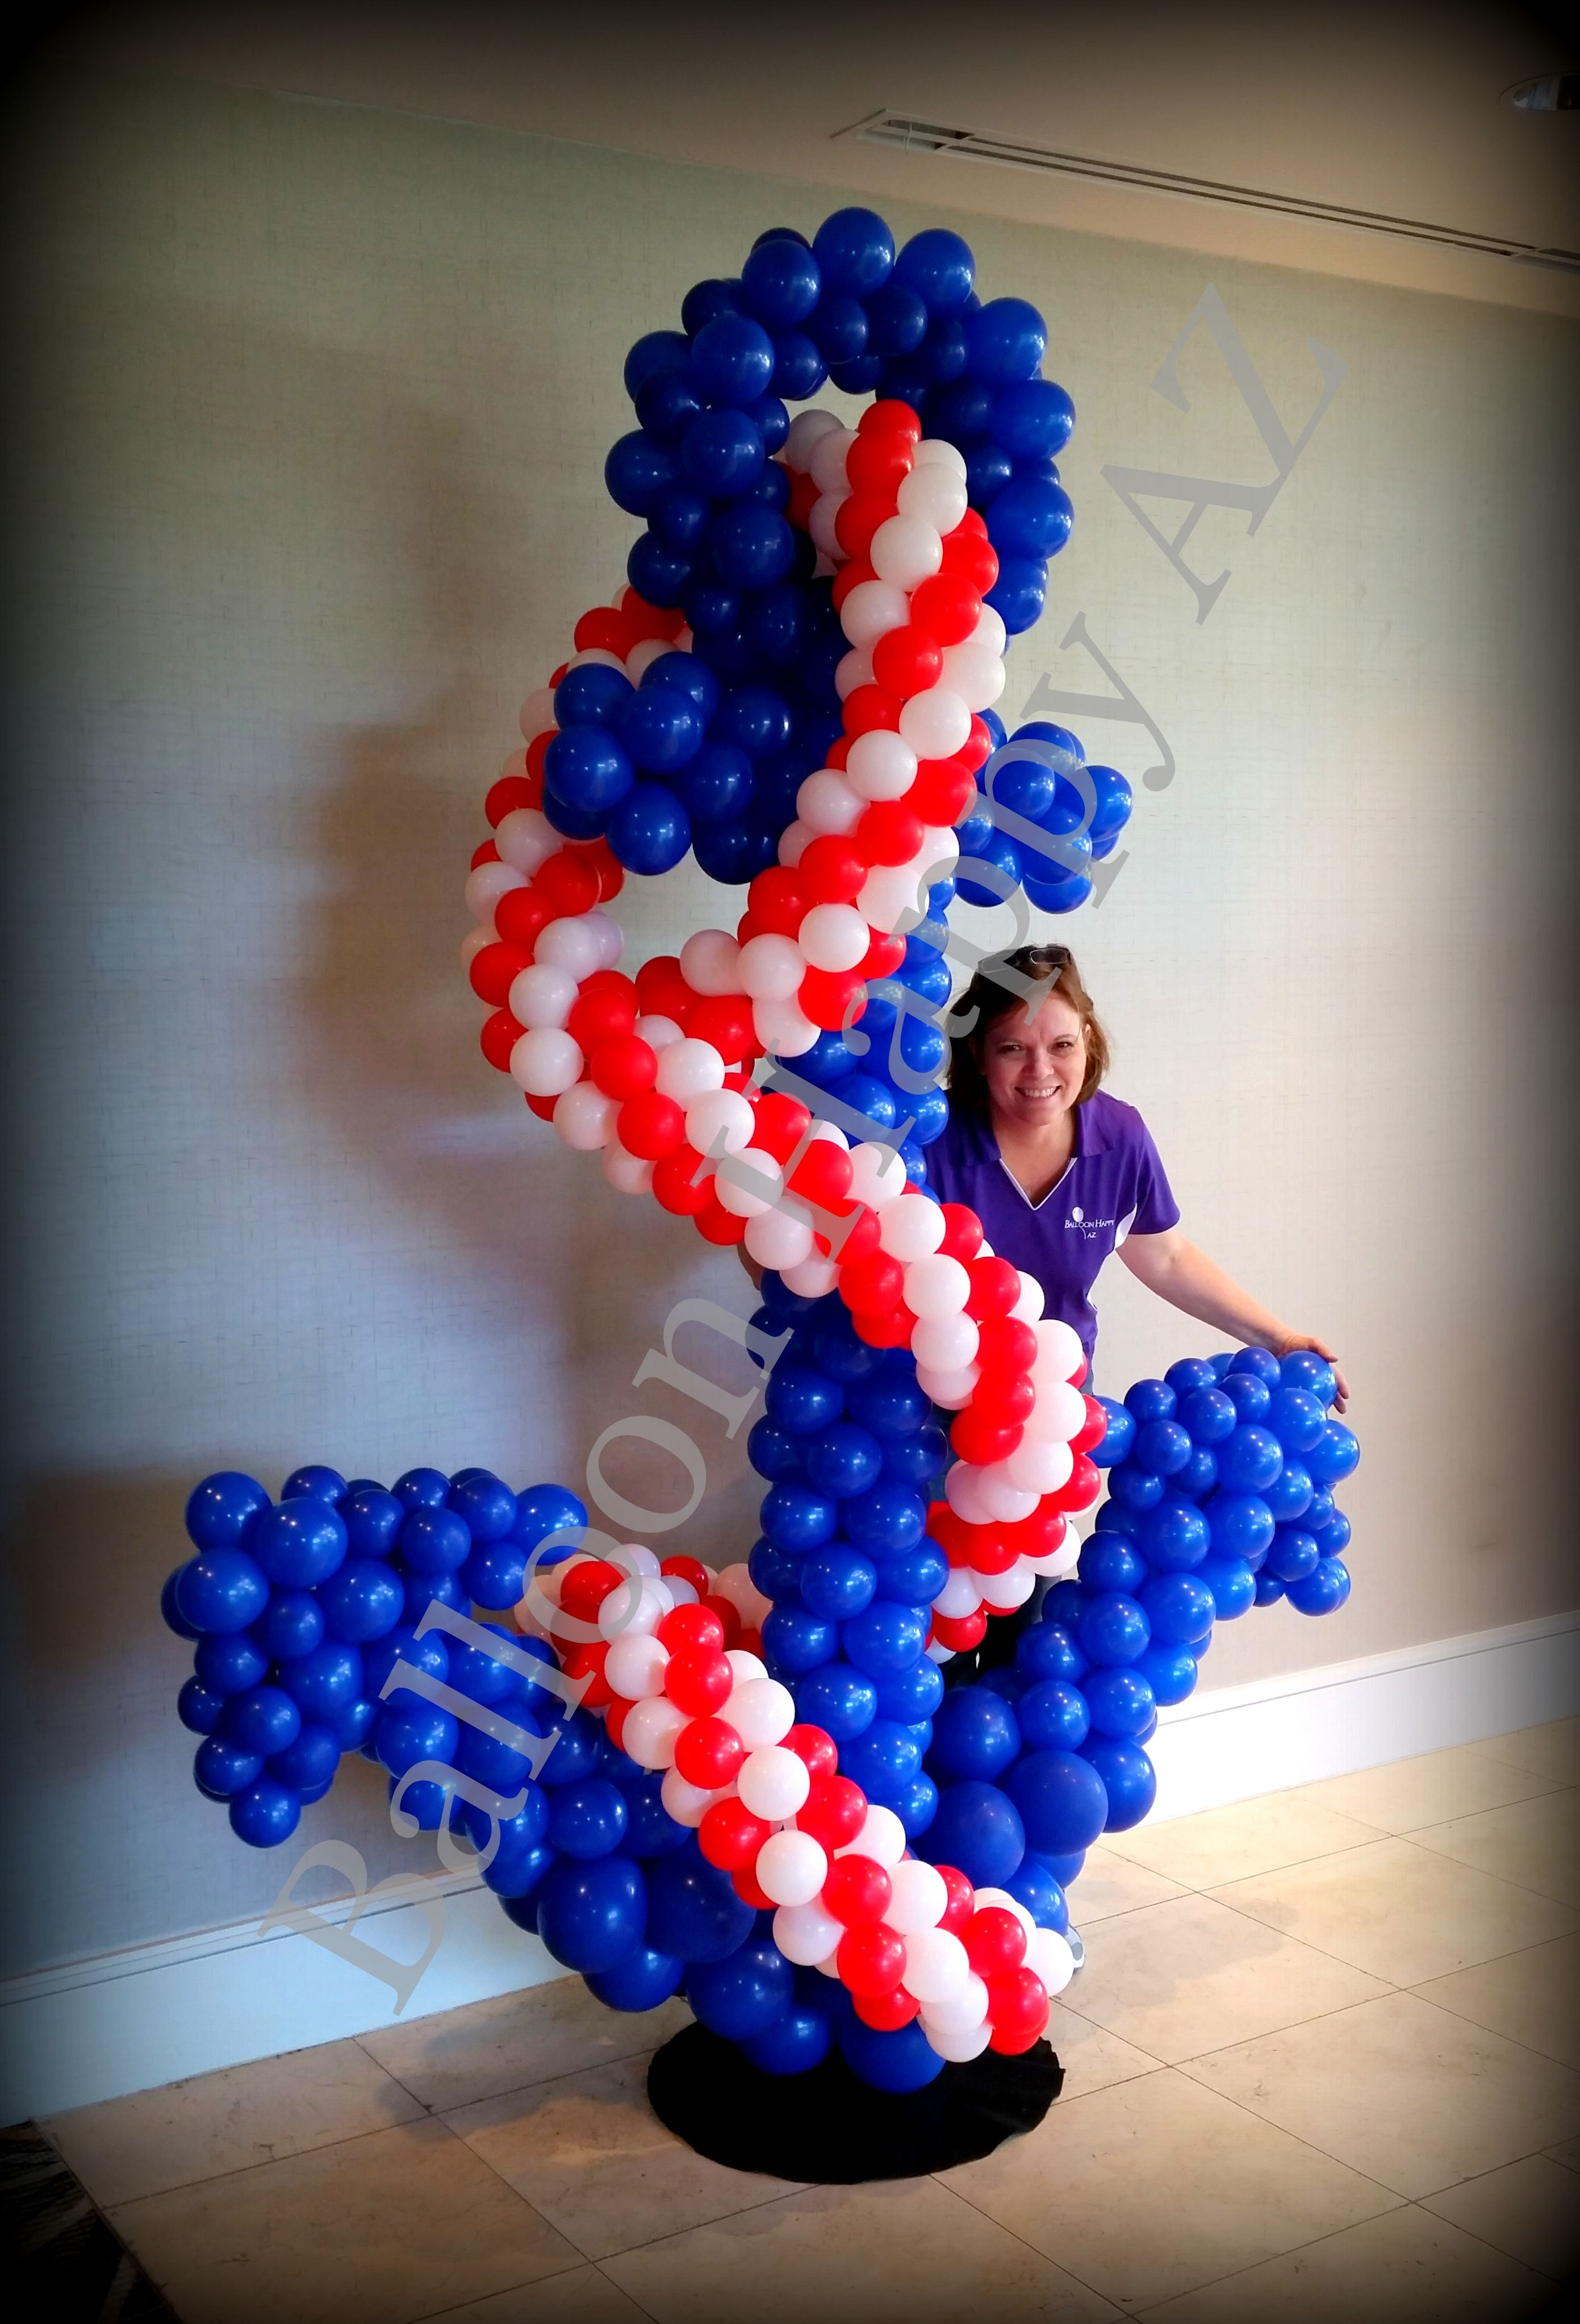 Balloon Anchor Column Red White and Blue with Balloon Anchor Column Red White and Blue with Brendajpg 27824091